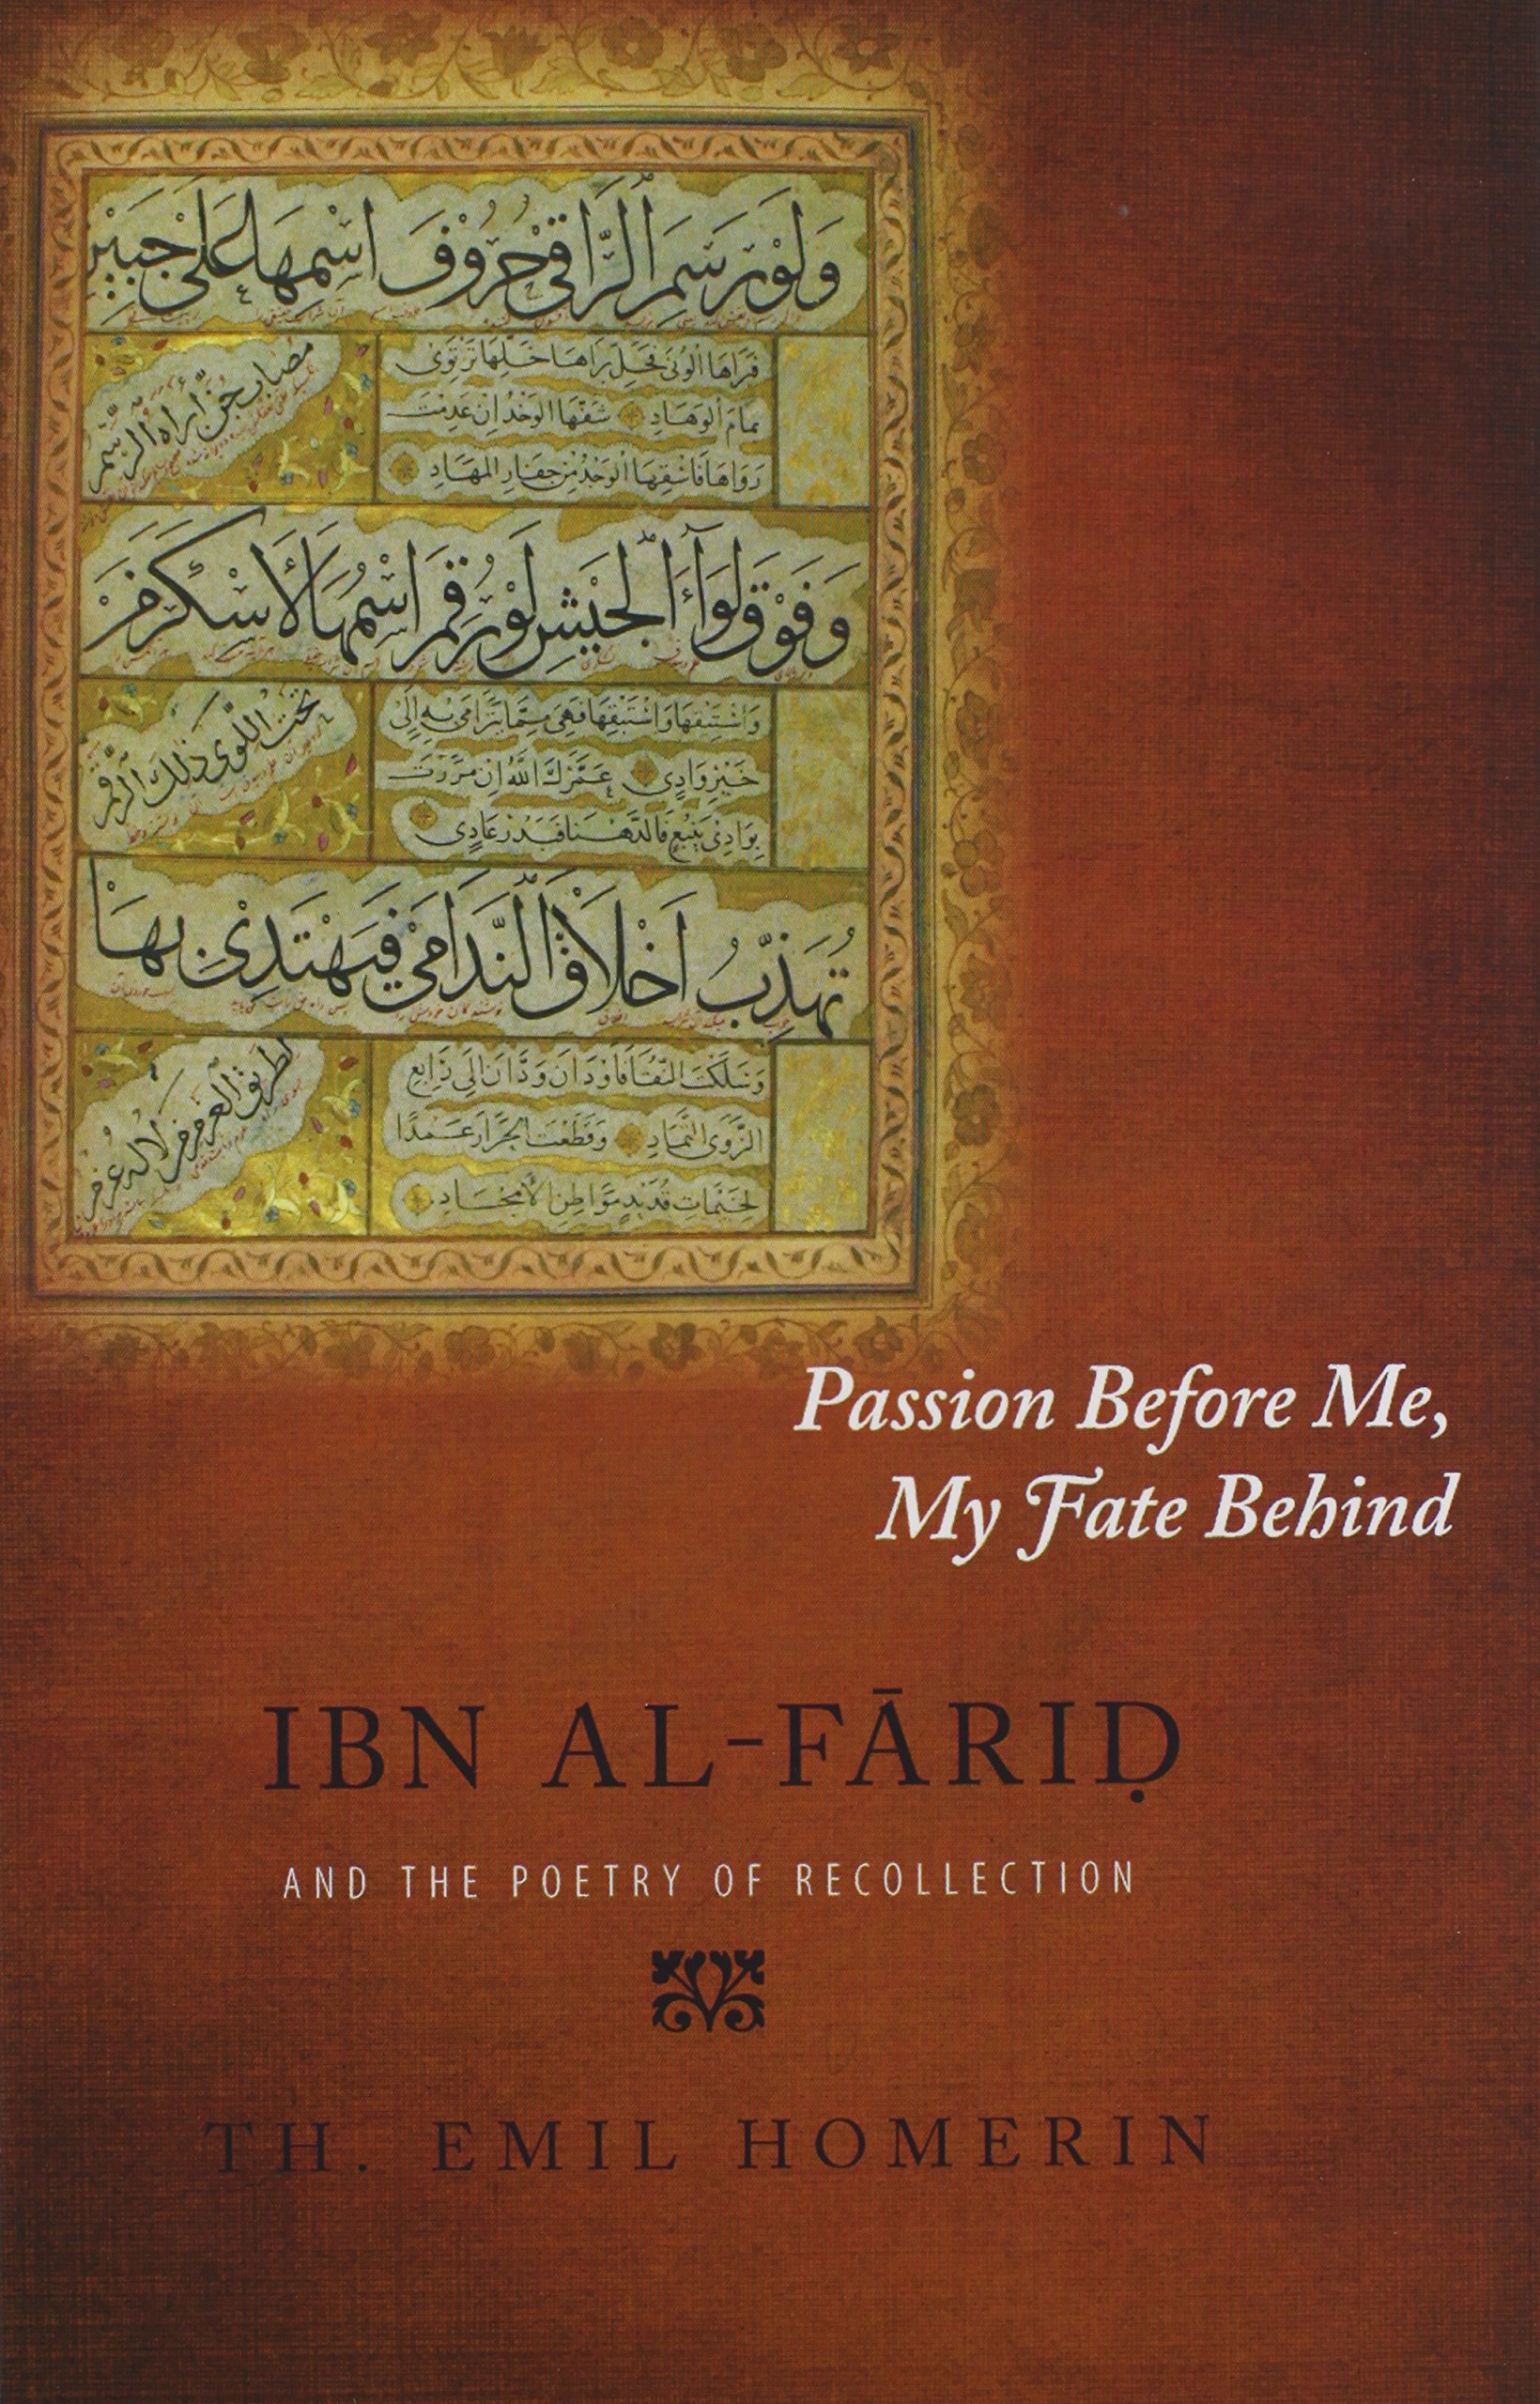 Passion Before Me, My Fate Behind: Ibn al-Farid and the Poetry of Recollection pdf epub